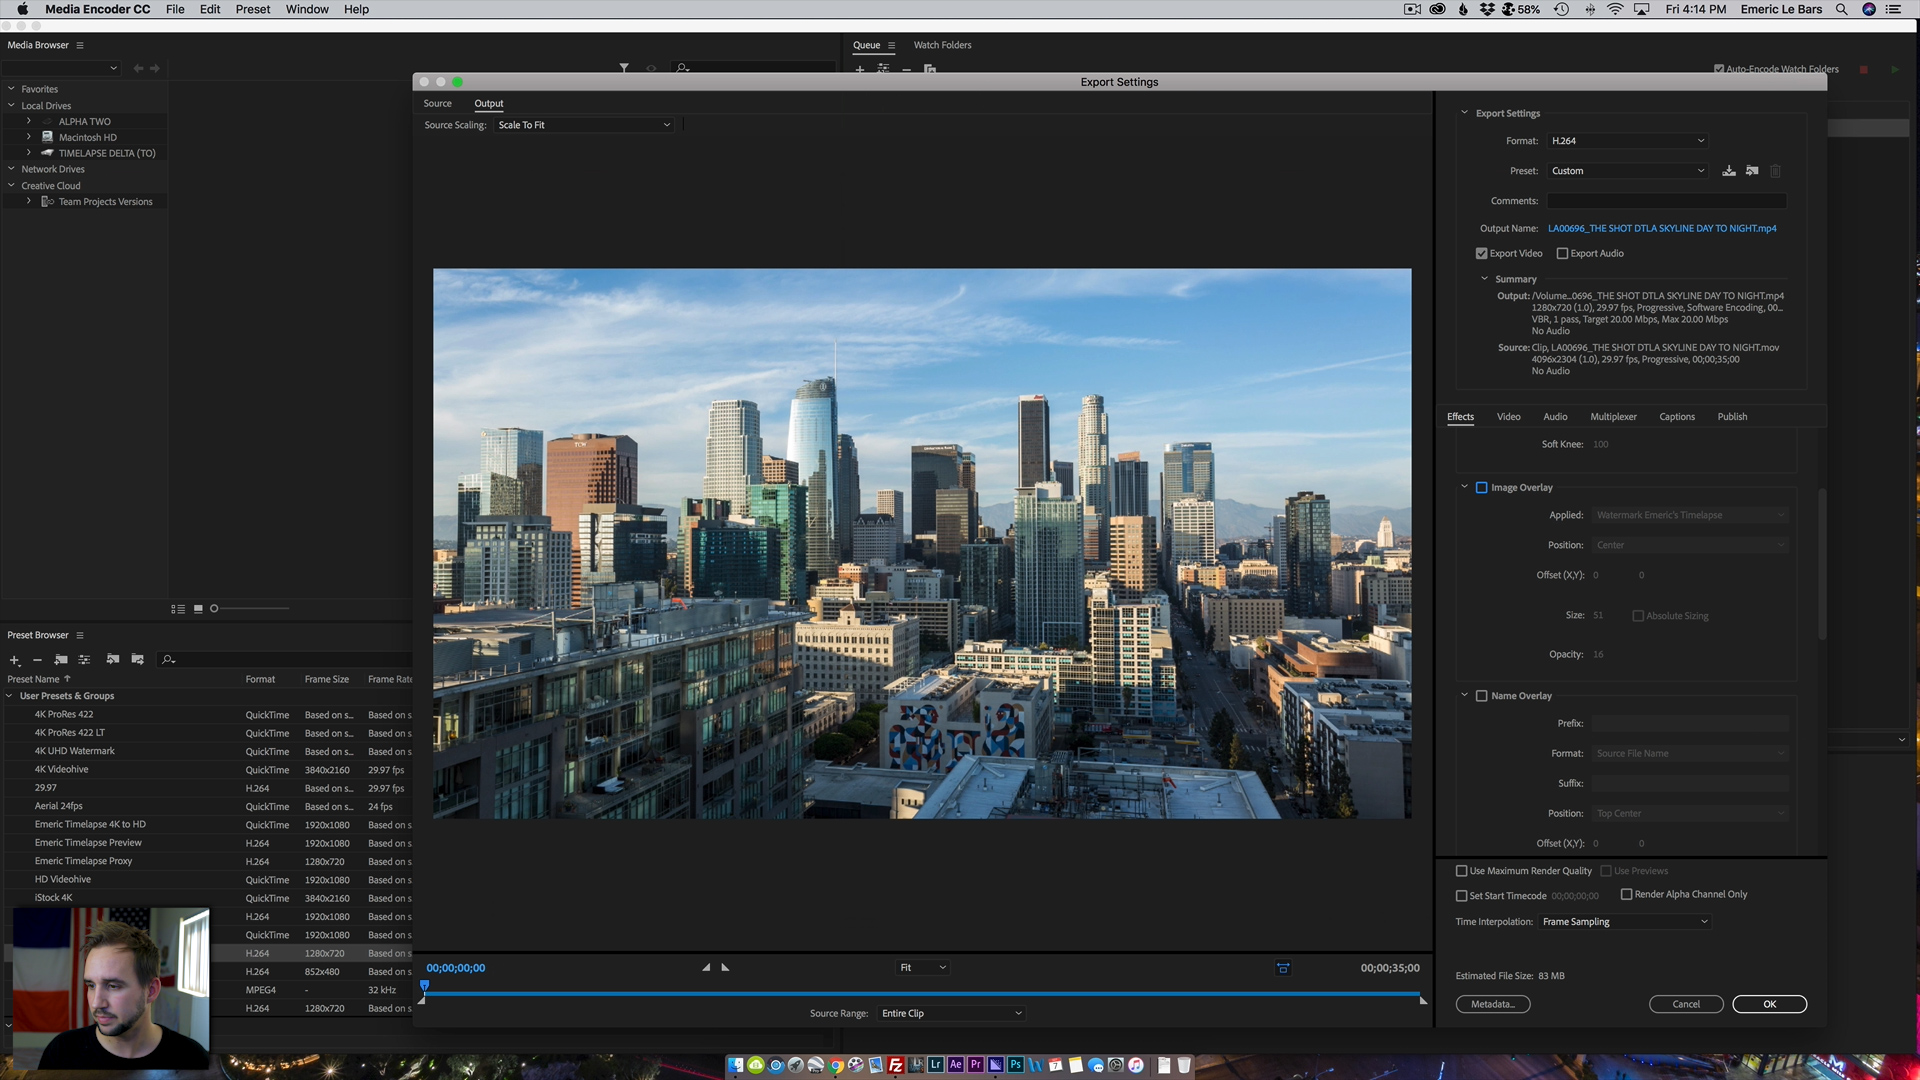 CREATING PROXIES ADOBE MEDIA ENCODER Timelapse Masterclass 2019